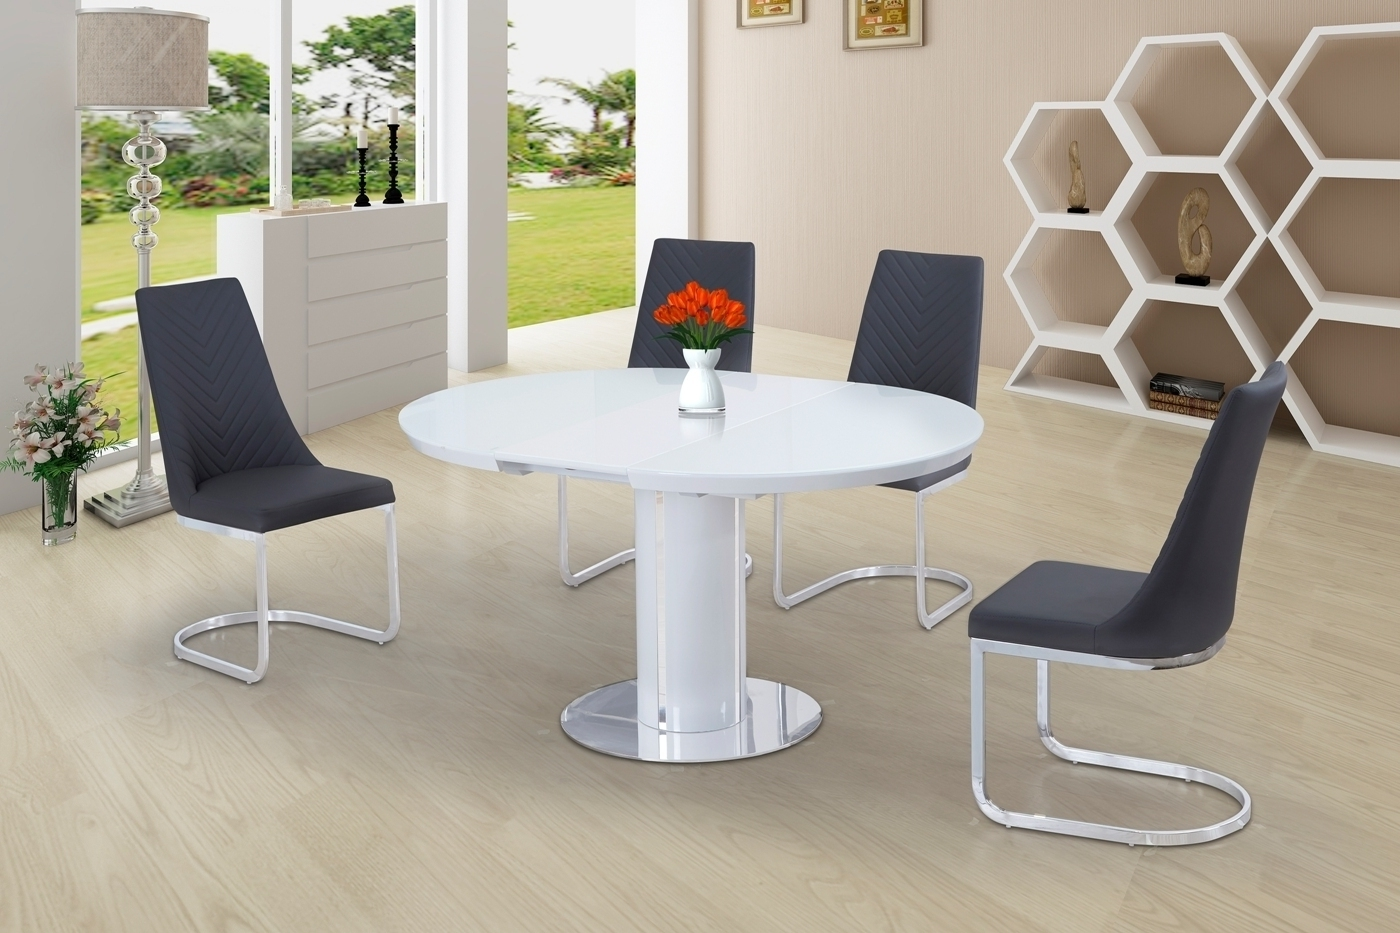 Well Known Round White Glass High Gloss Dining Table And 6 Grey Chairs Inside Extending Gloss Dining Tables (View 16 of 25)